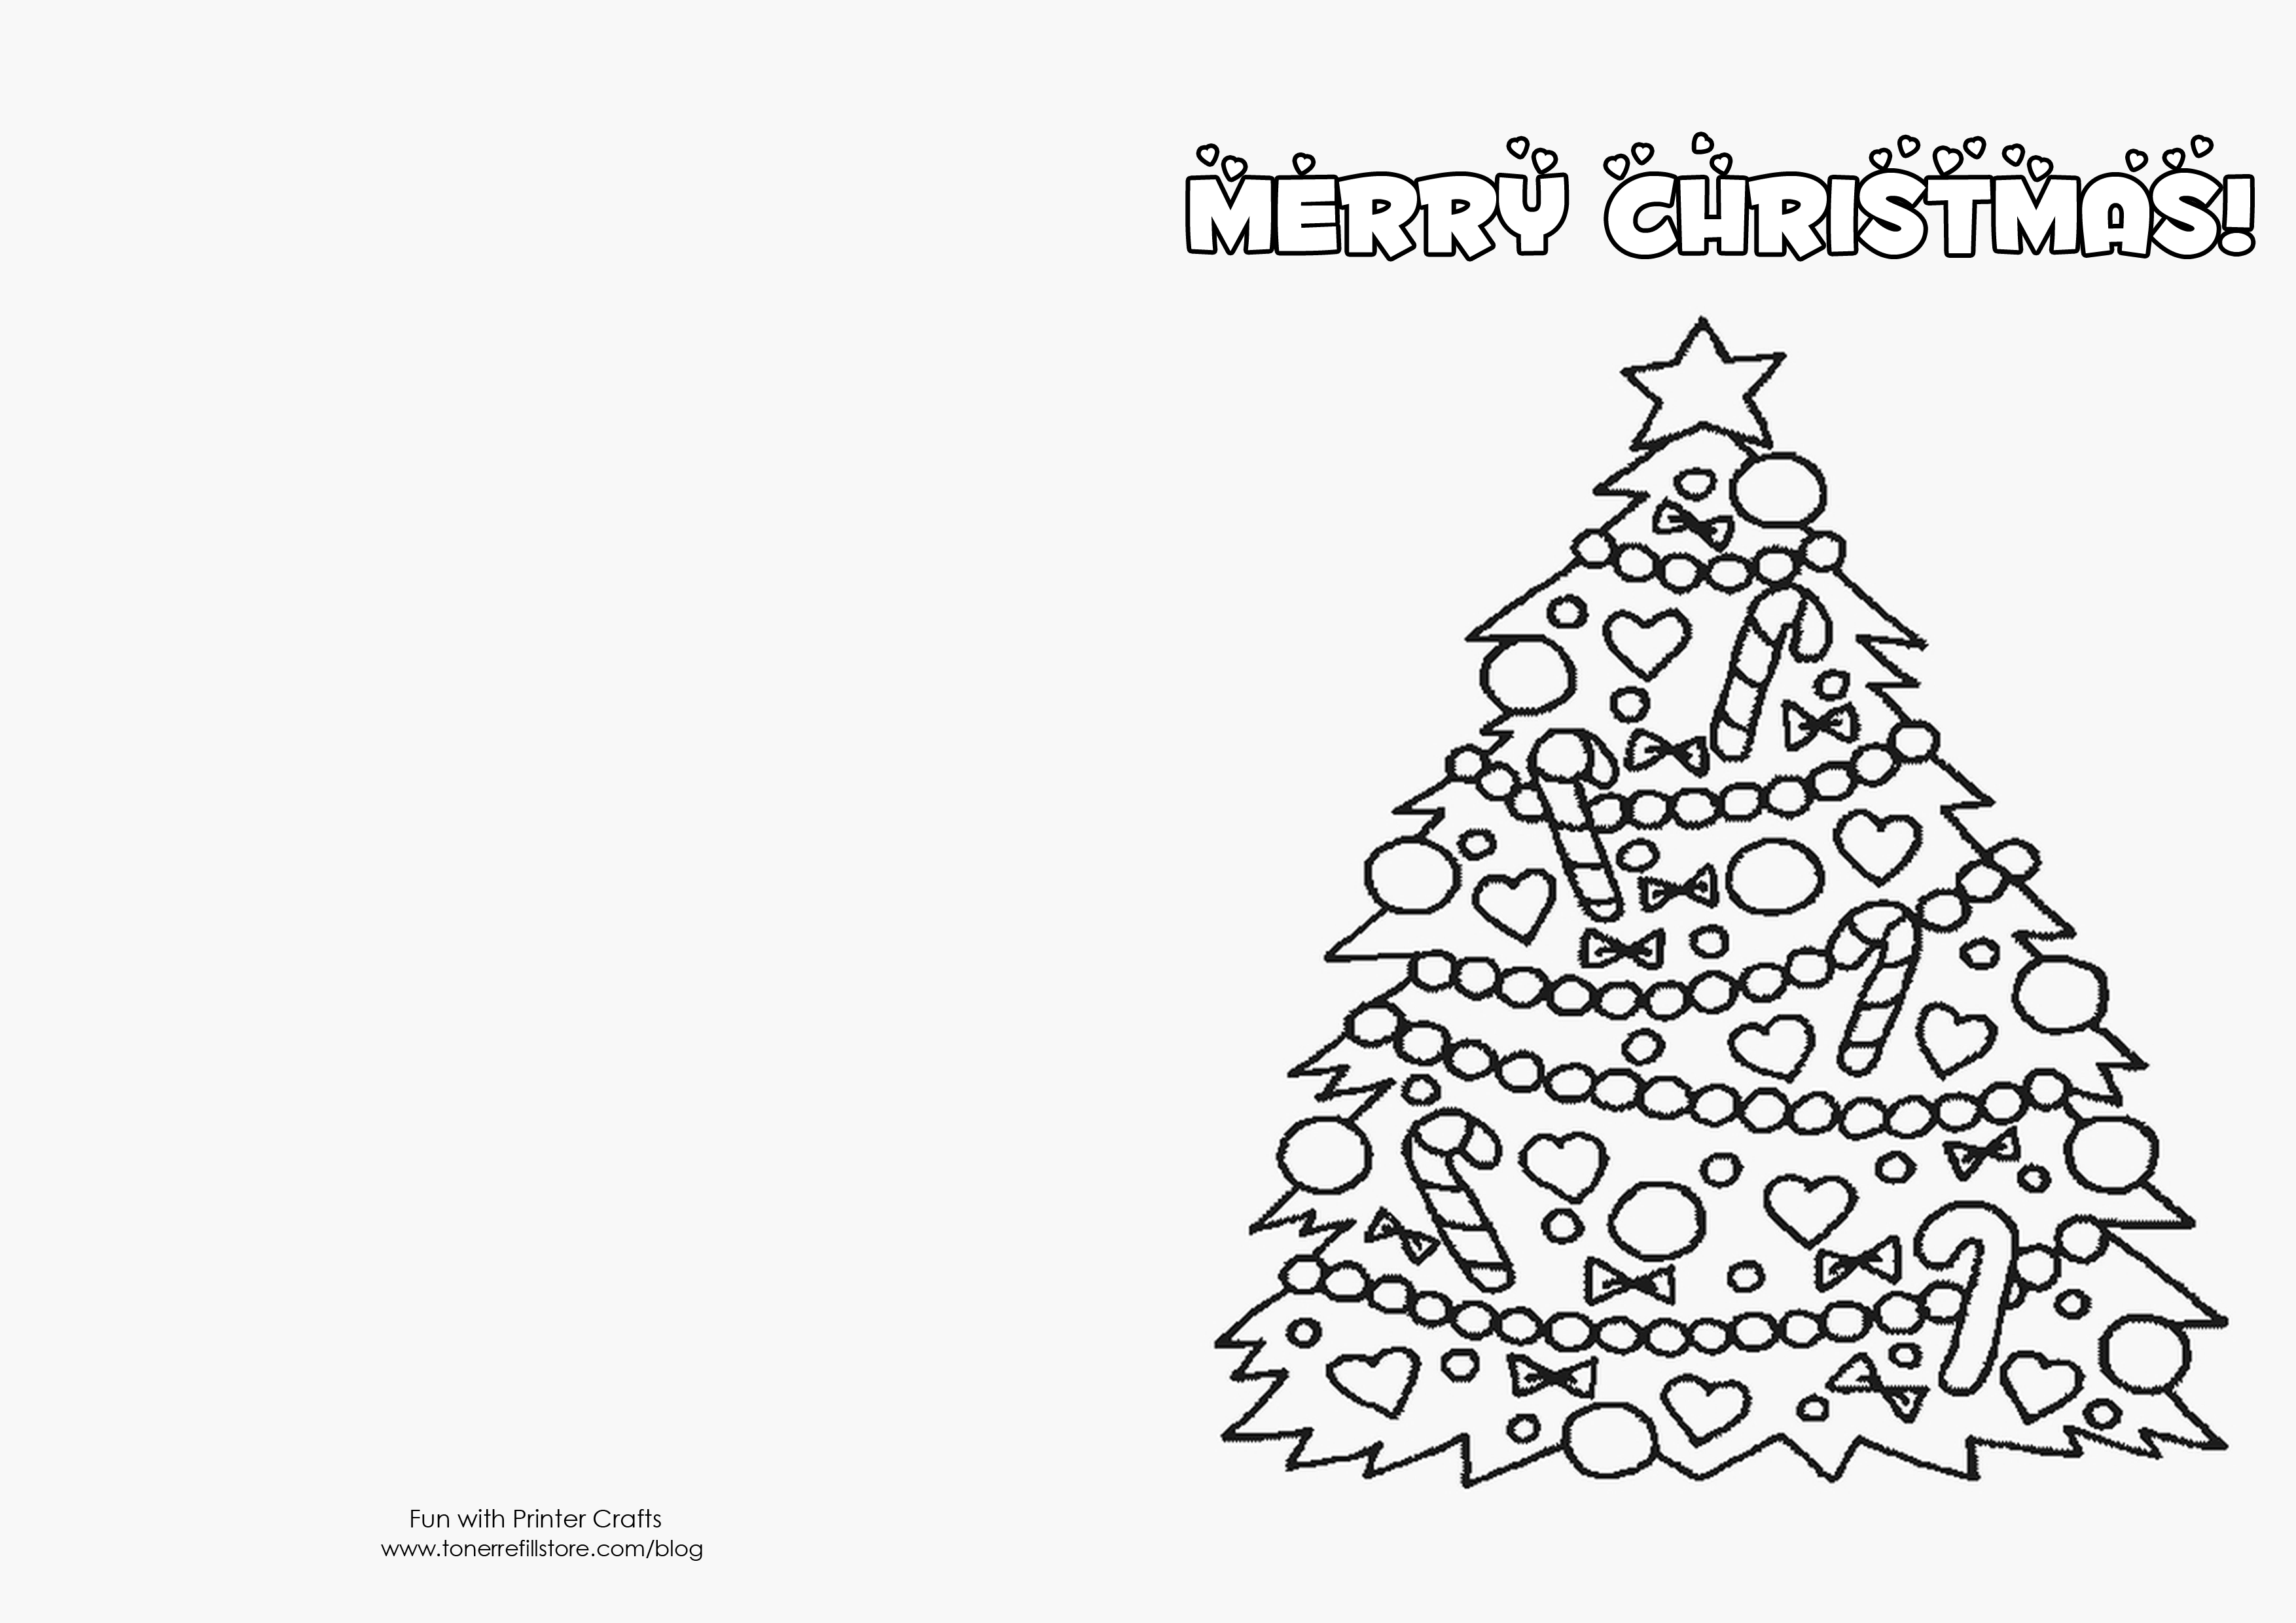 Printable Christmas Cards To Color.How To Make Printable Christmas Cards For Kids To Color